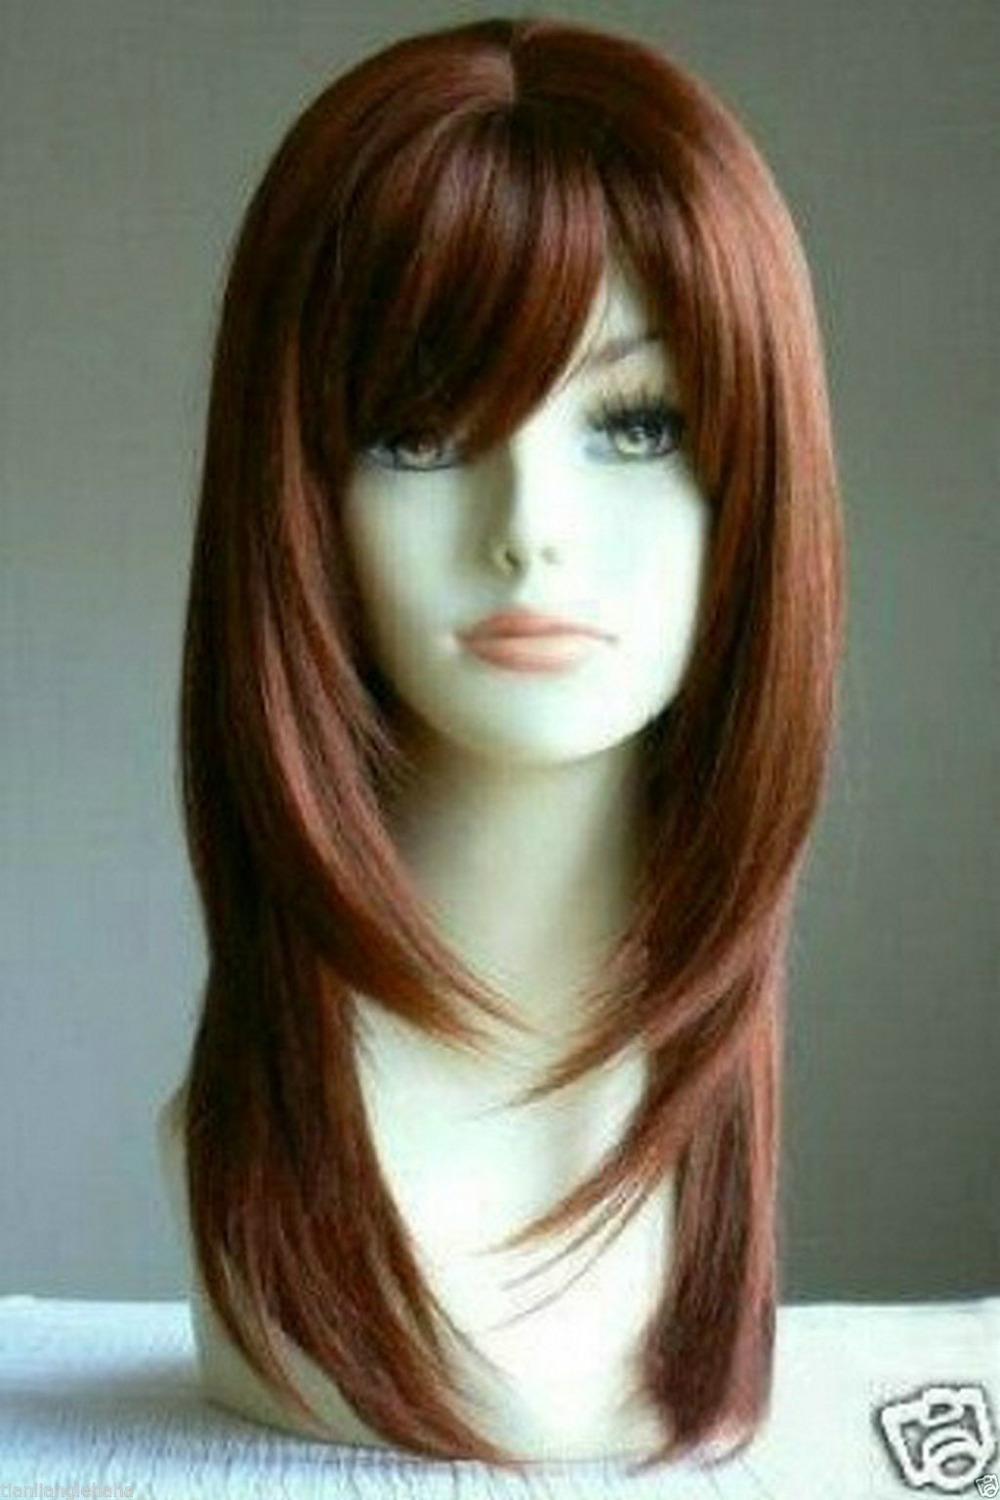 100% True Cosplay Axis Powers Hetalia Aph South Italy Lovino Vargas Wig Quell Summer Thirst Party Hats